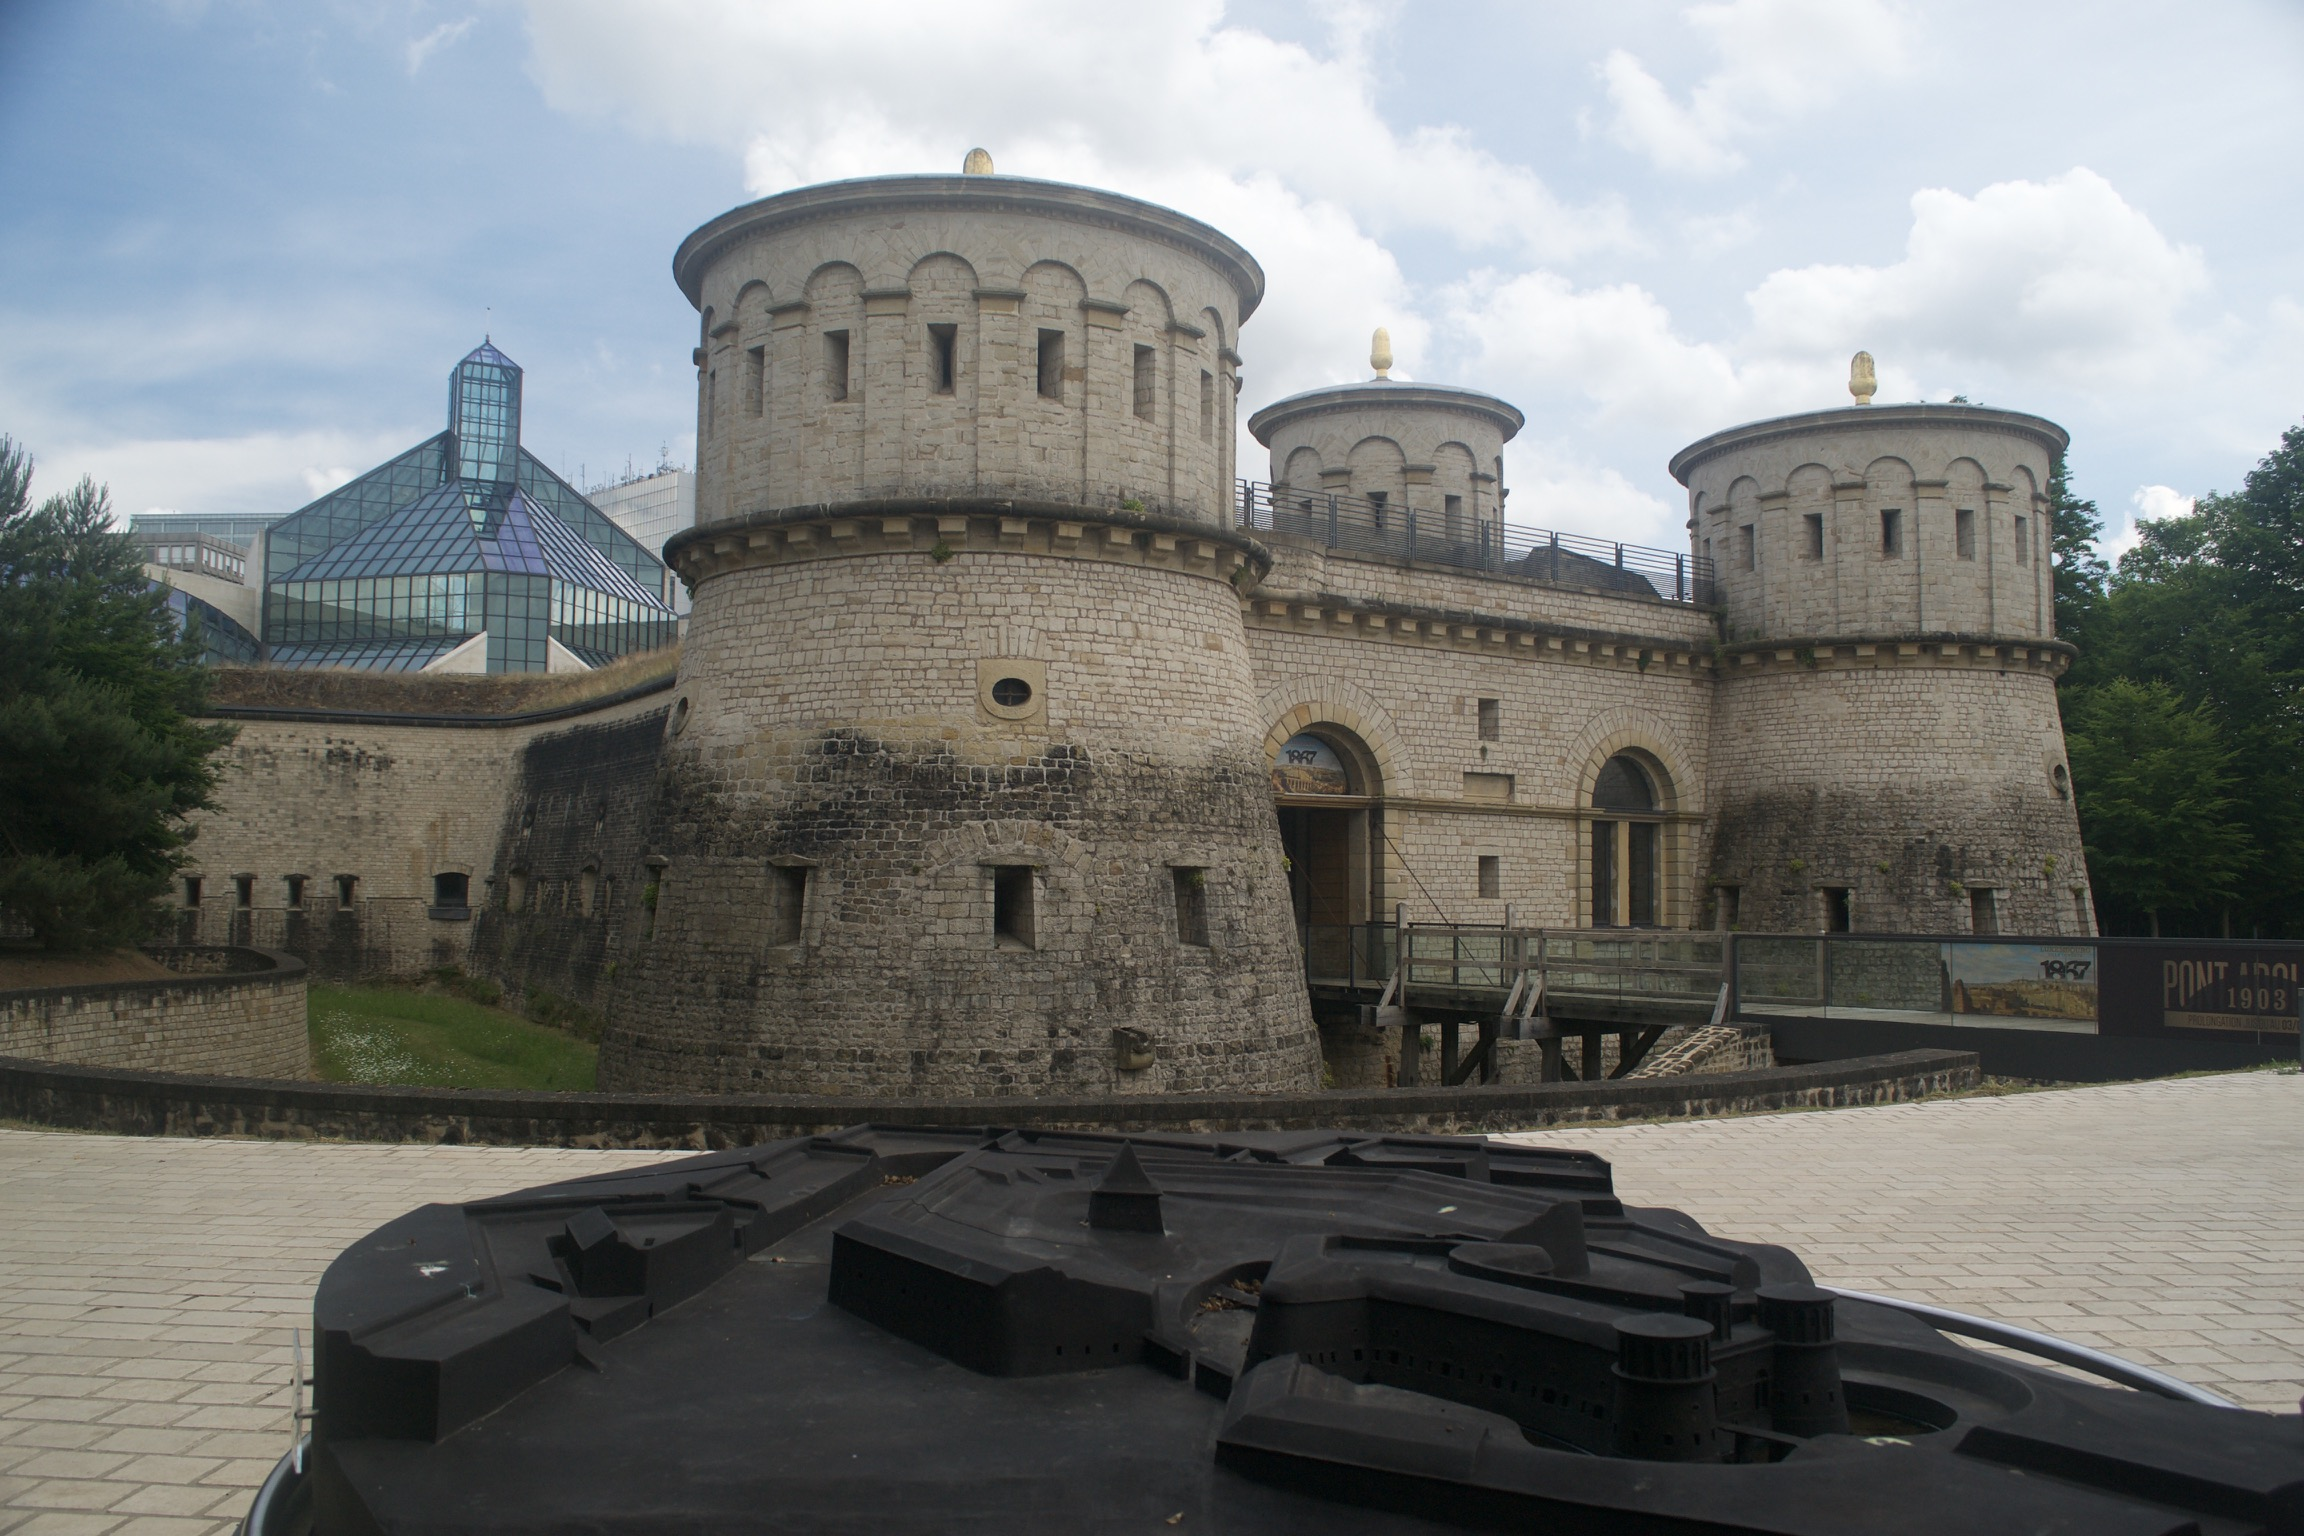 A fortress with three large round turrets, each with a golden orb on top, in front of a tall glass building in the background.